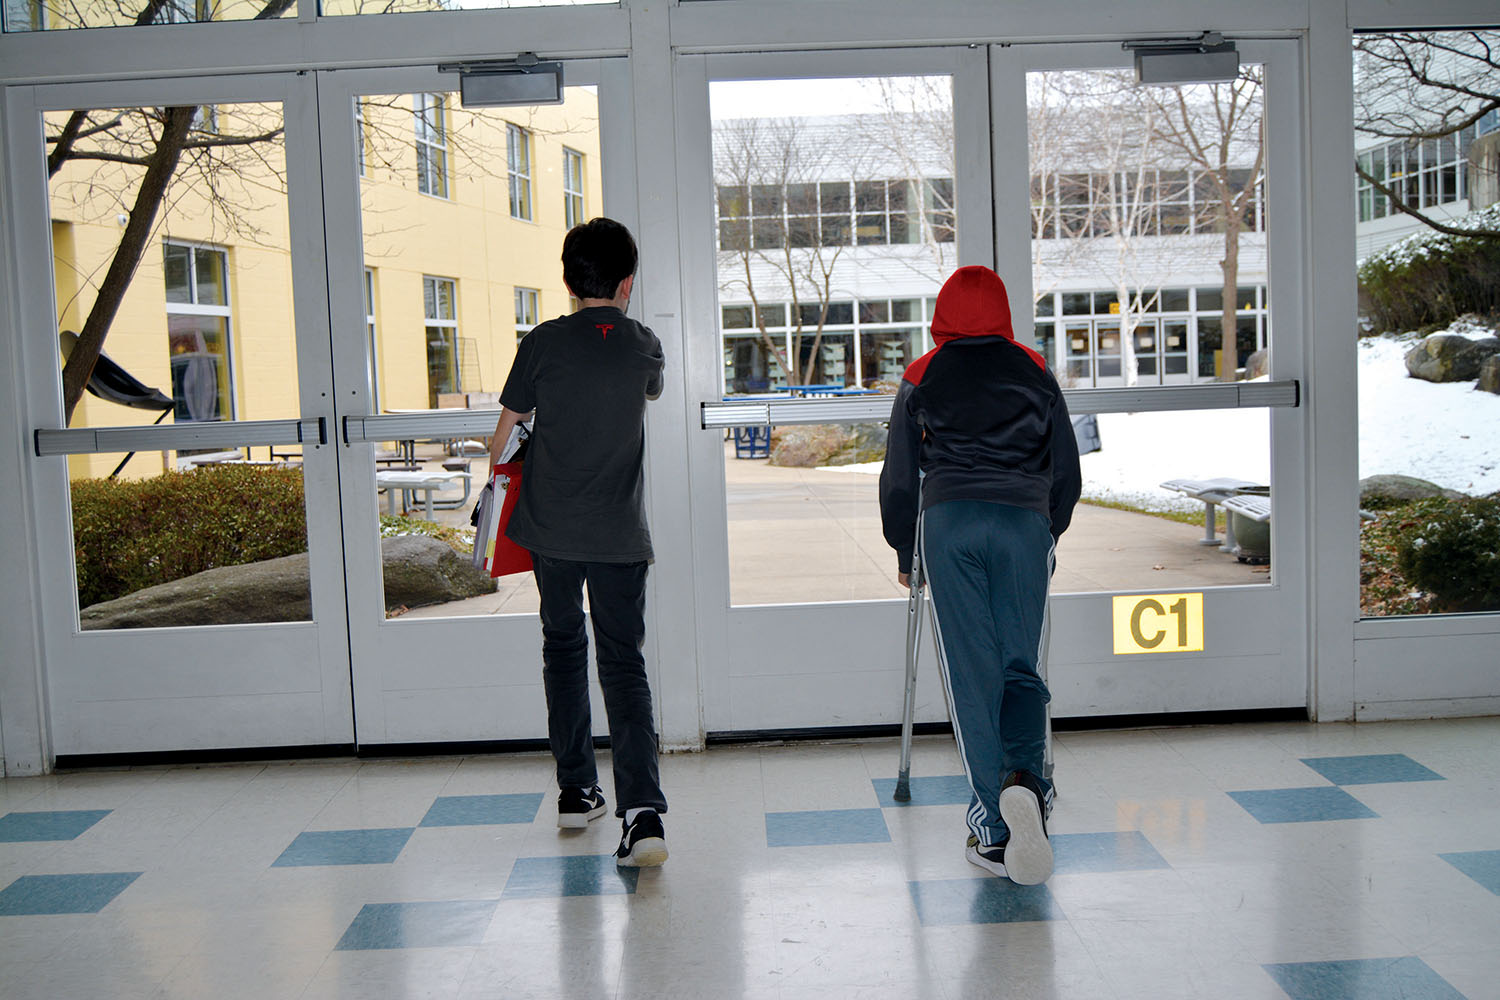 To help those on crutches, BMS has student helpers to carry binders.